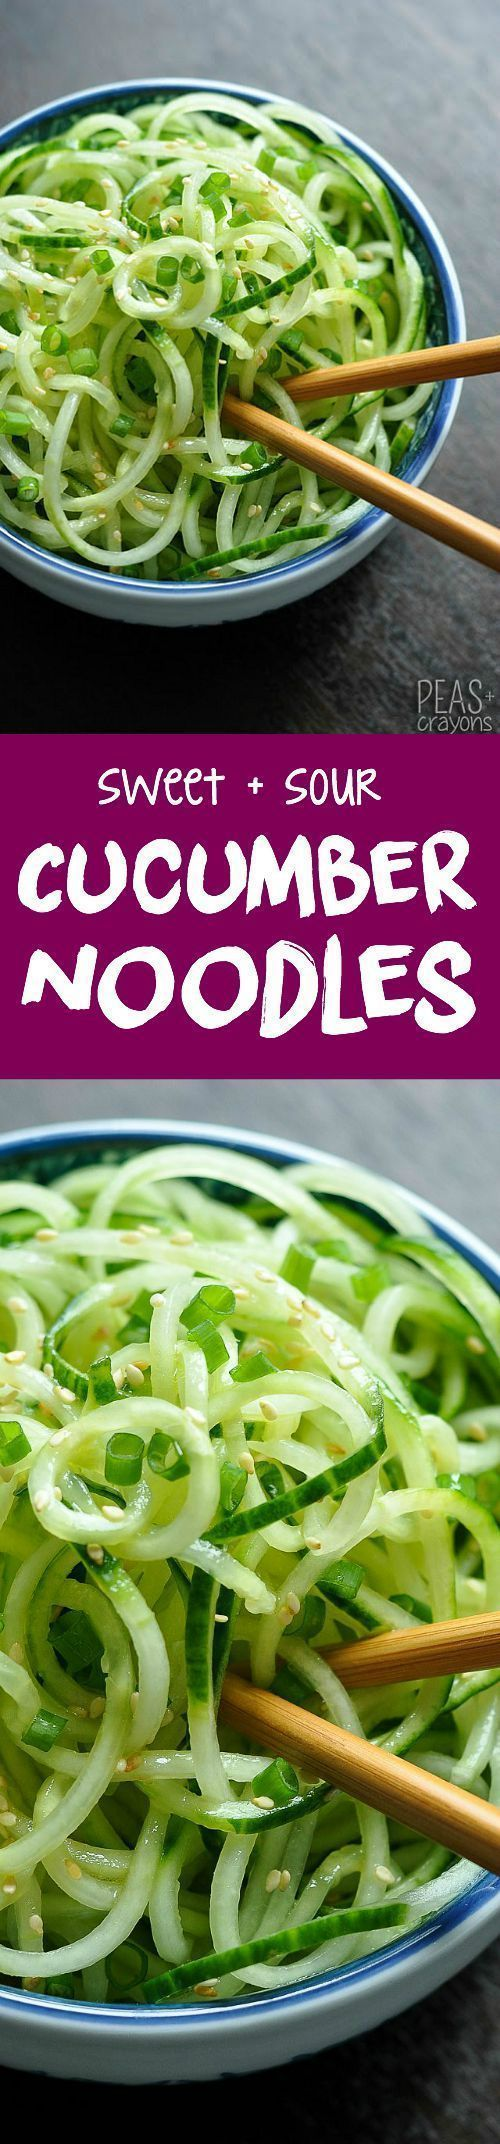 sweet and sour cucumber noodles - we can't stop making this healthy salad!